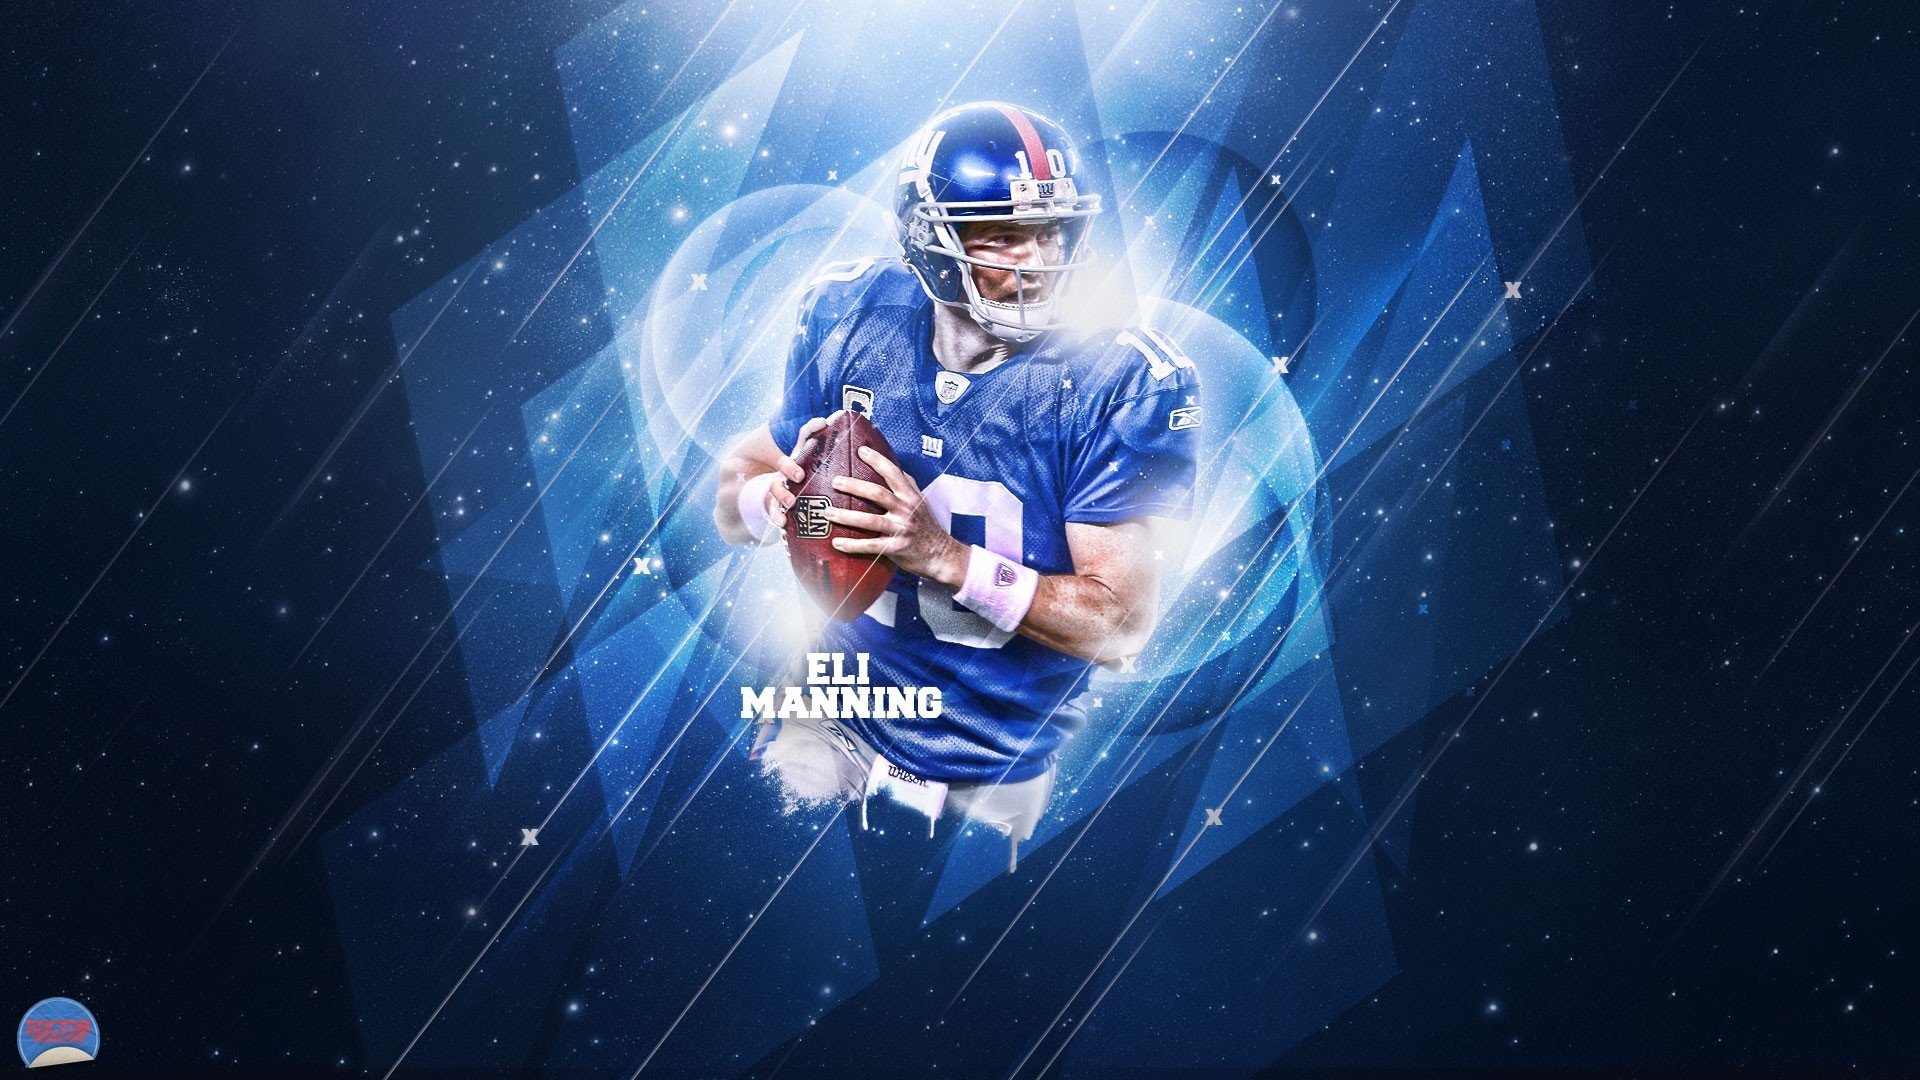 Eli Manning New York Giants Qb Wallpaper